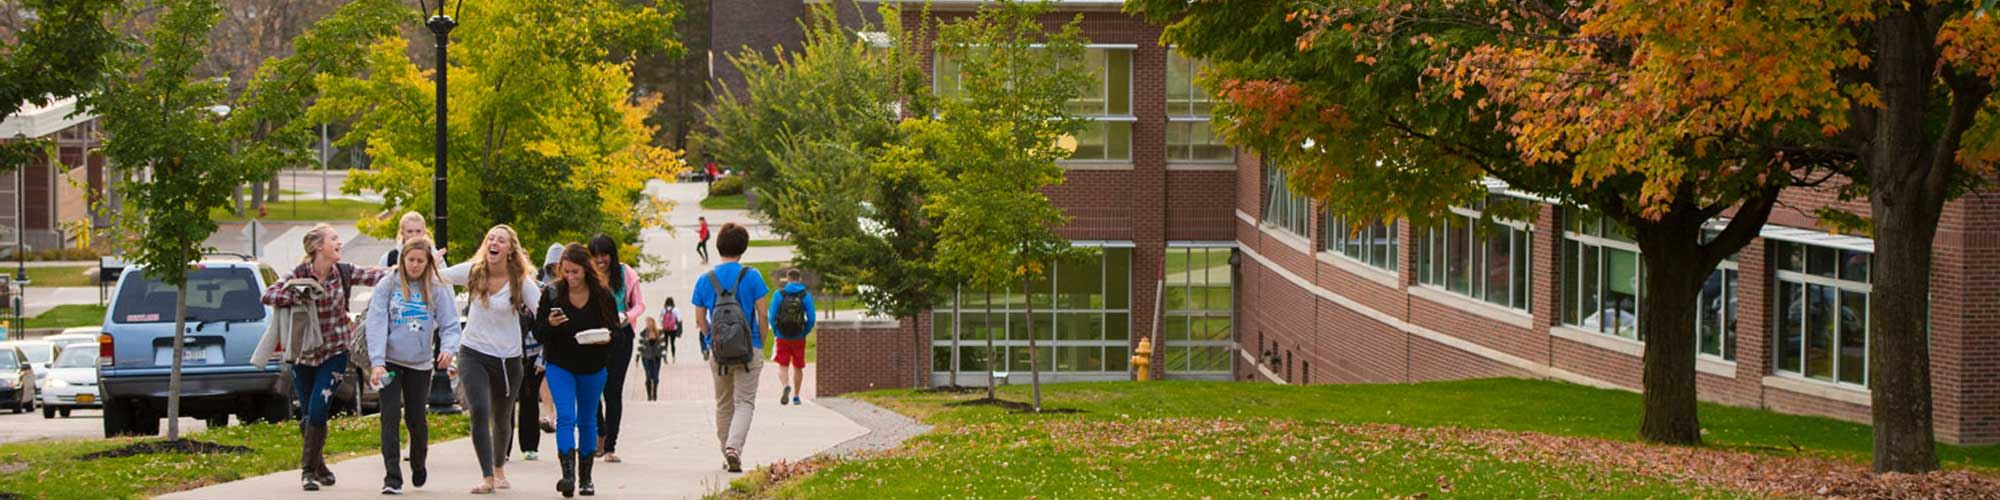 SUNY Cortland students enjoy a walk up the hill in the fall.